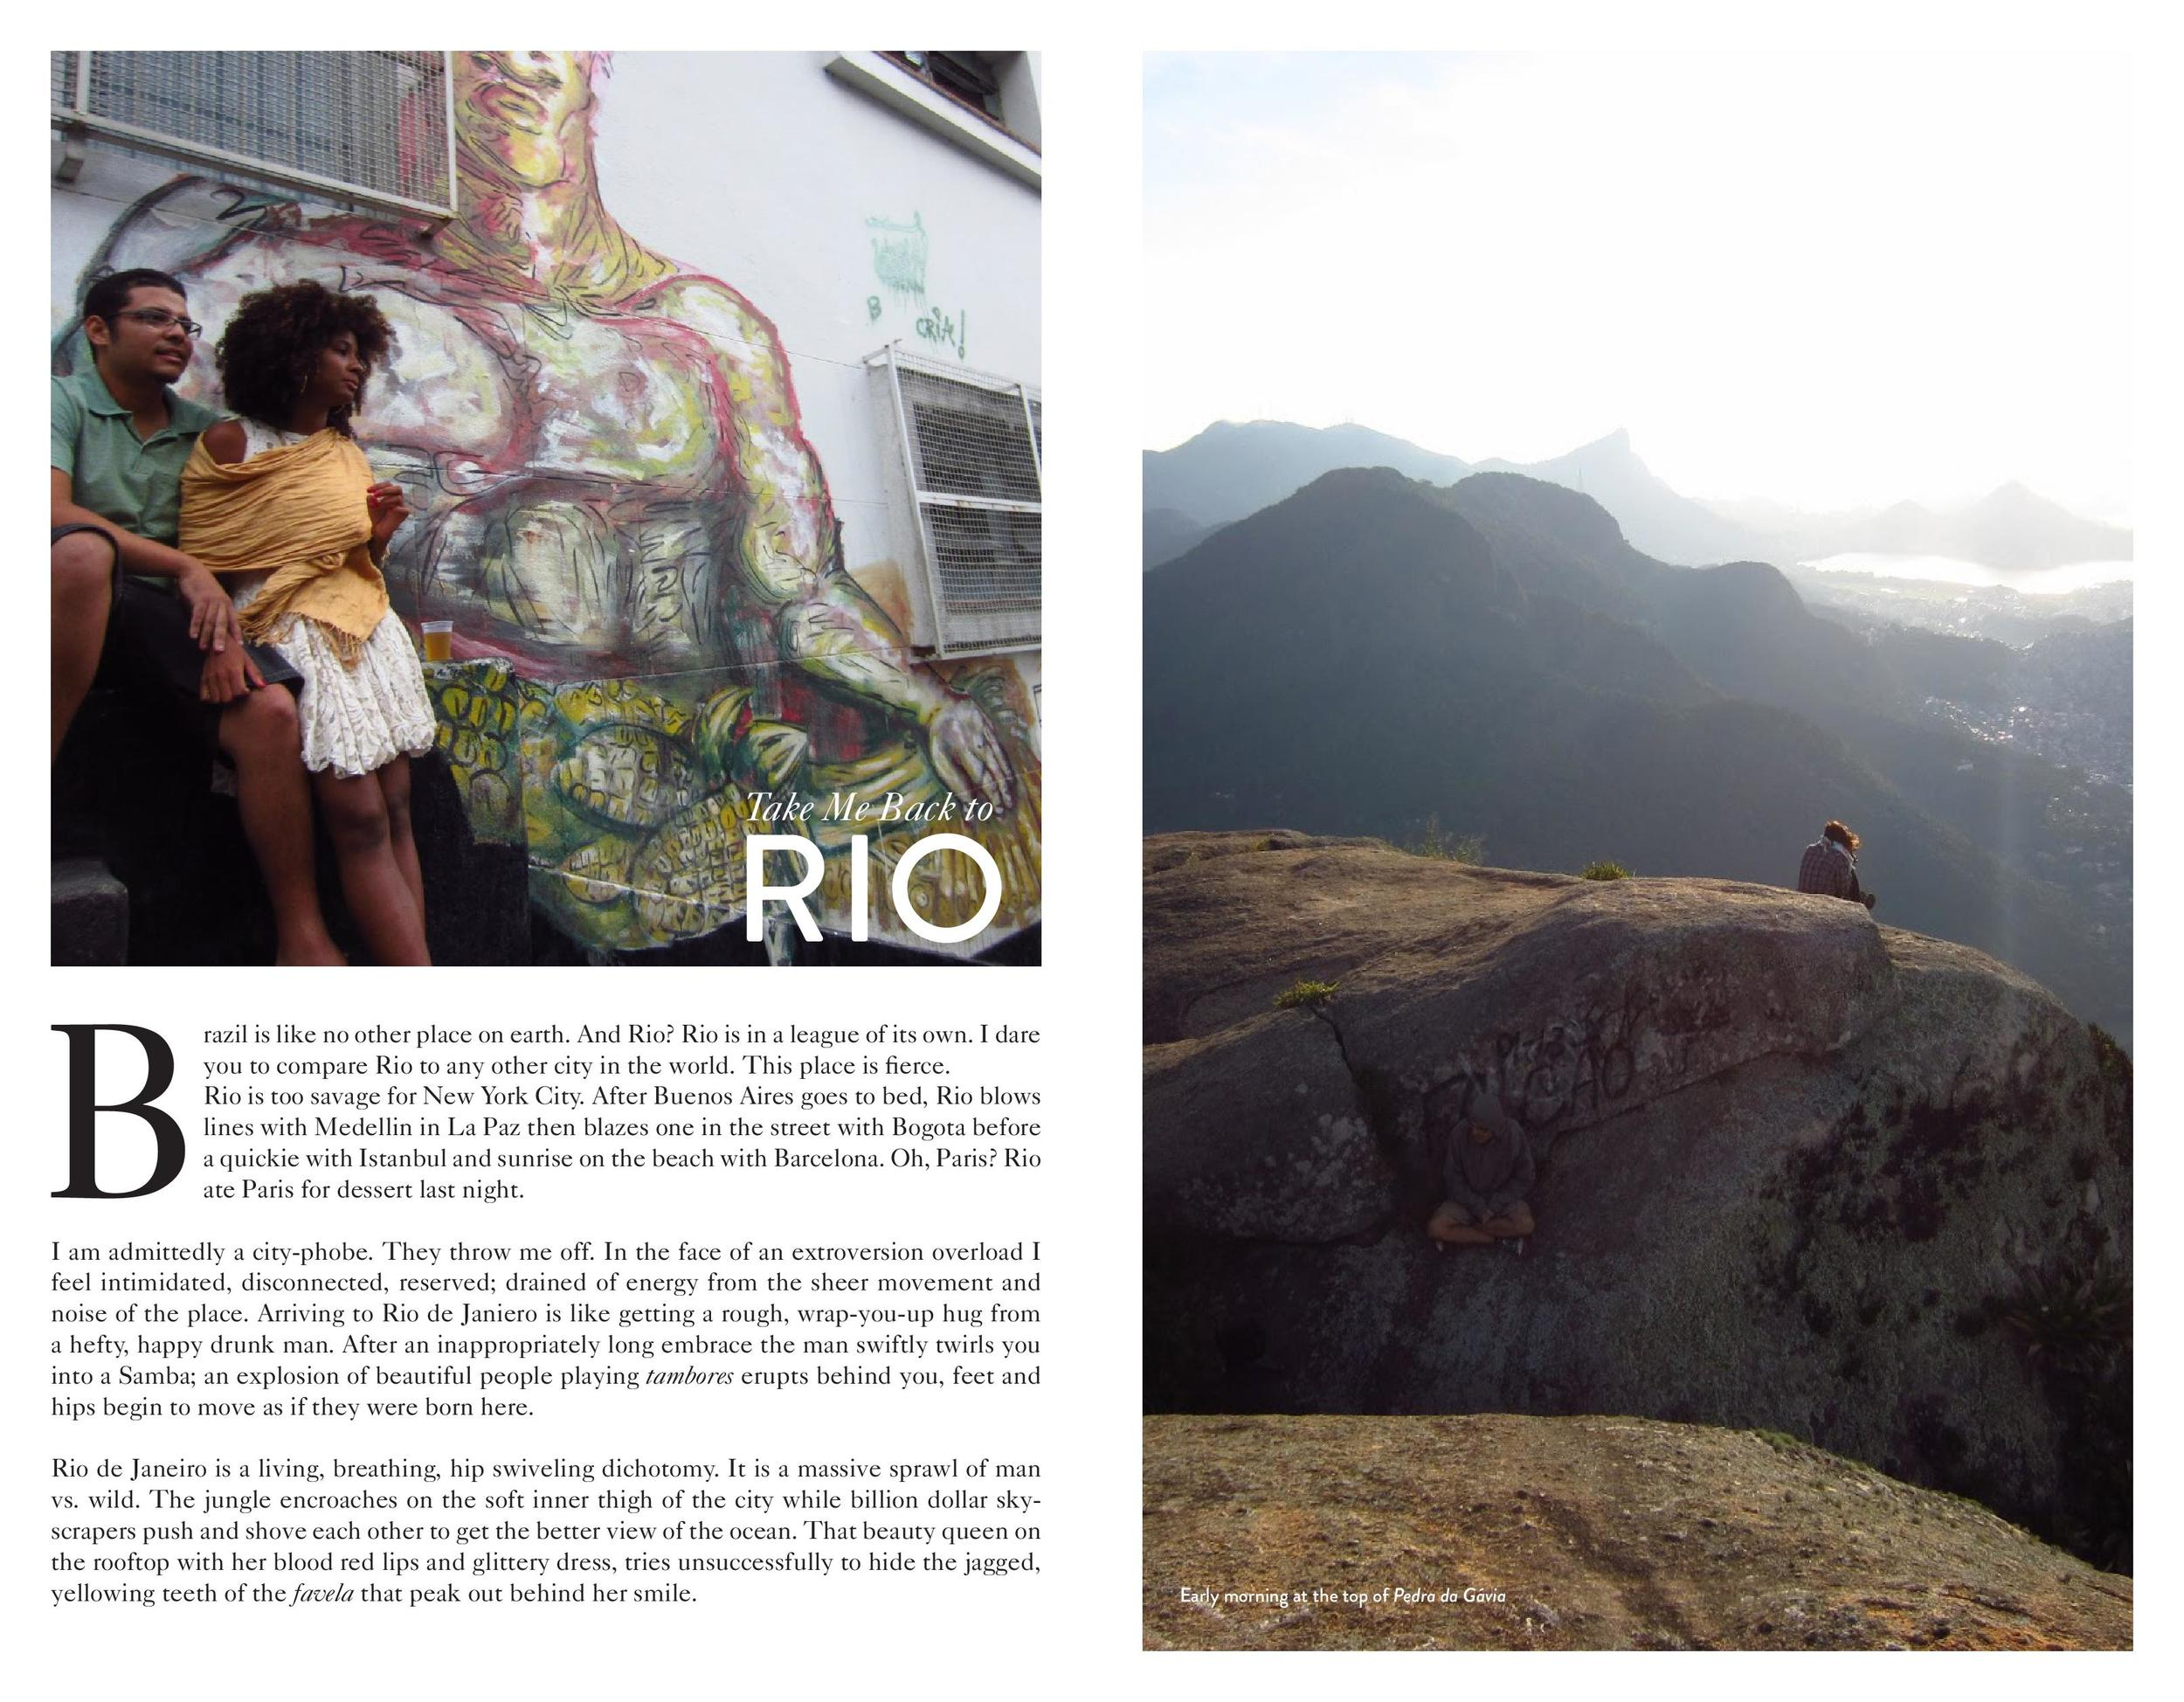 travels_with_a_burro_brazil_02-page-002.jpg